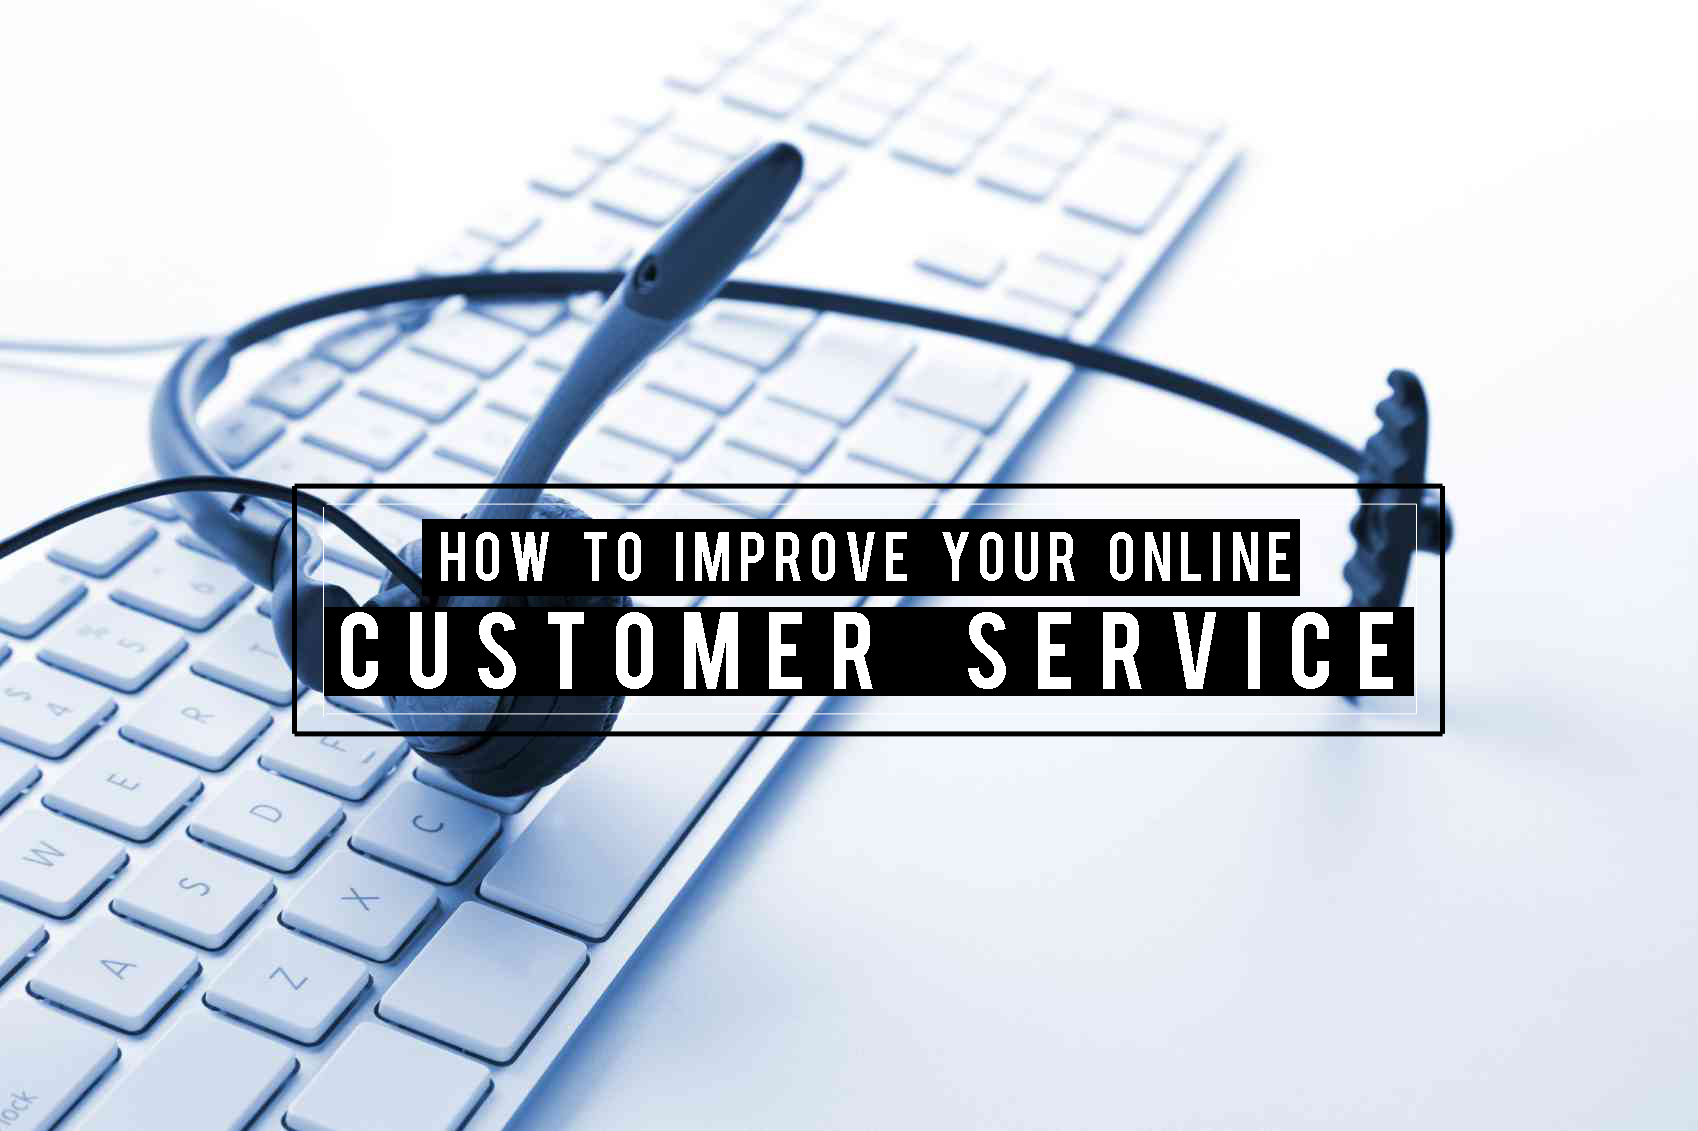 How to Improve your Online Customer Service